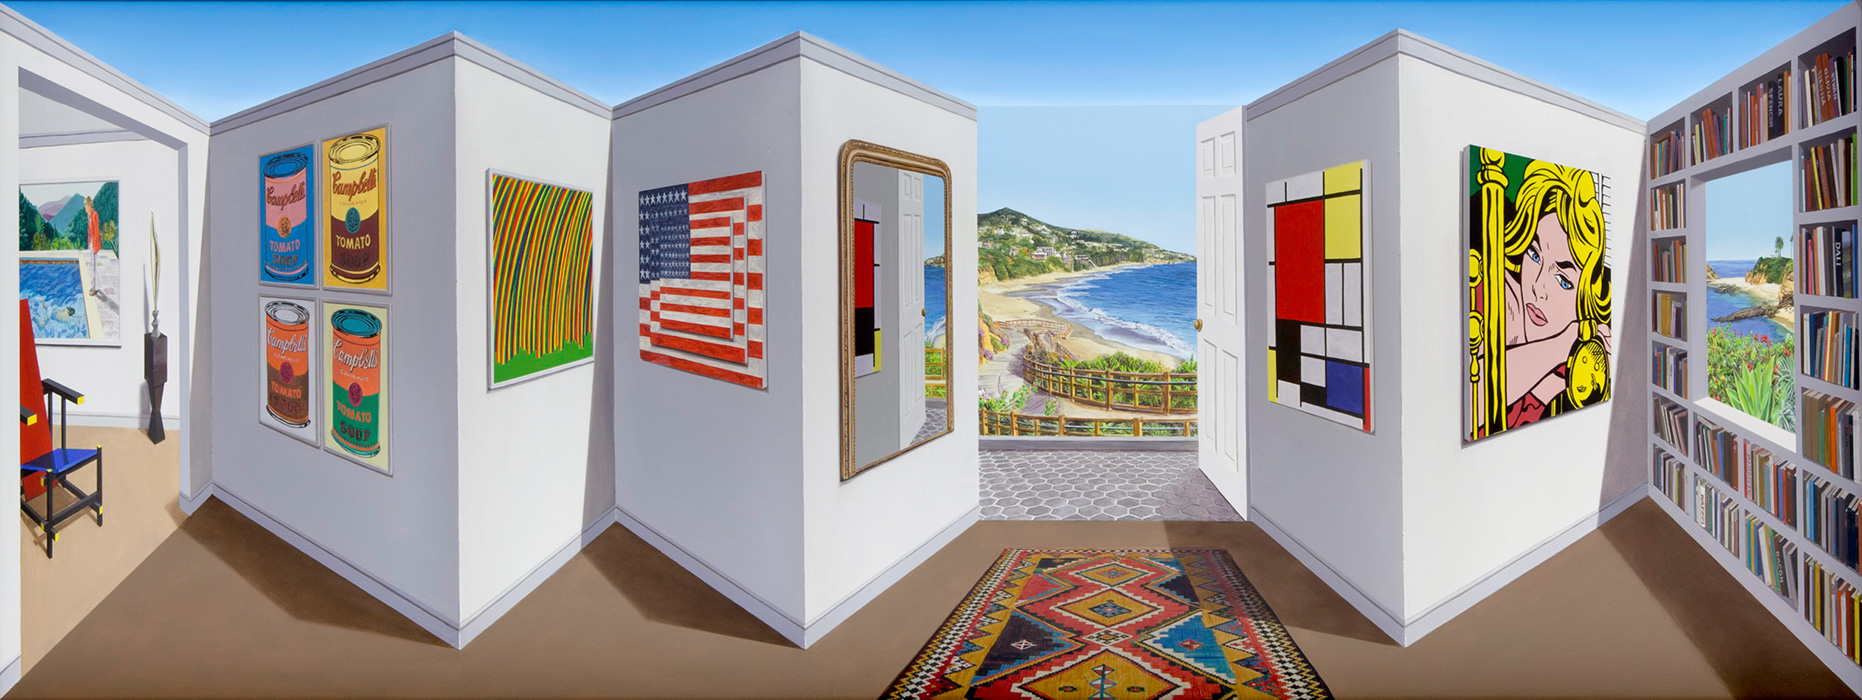 California Dreams <p>2016 | 42 x 132 x 18 cm / 16½ x 52 x 7⅛ in</p>